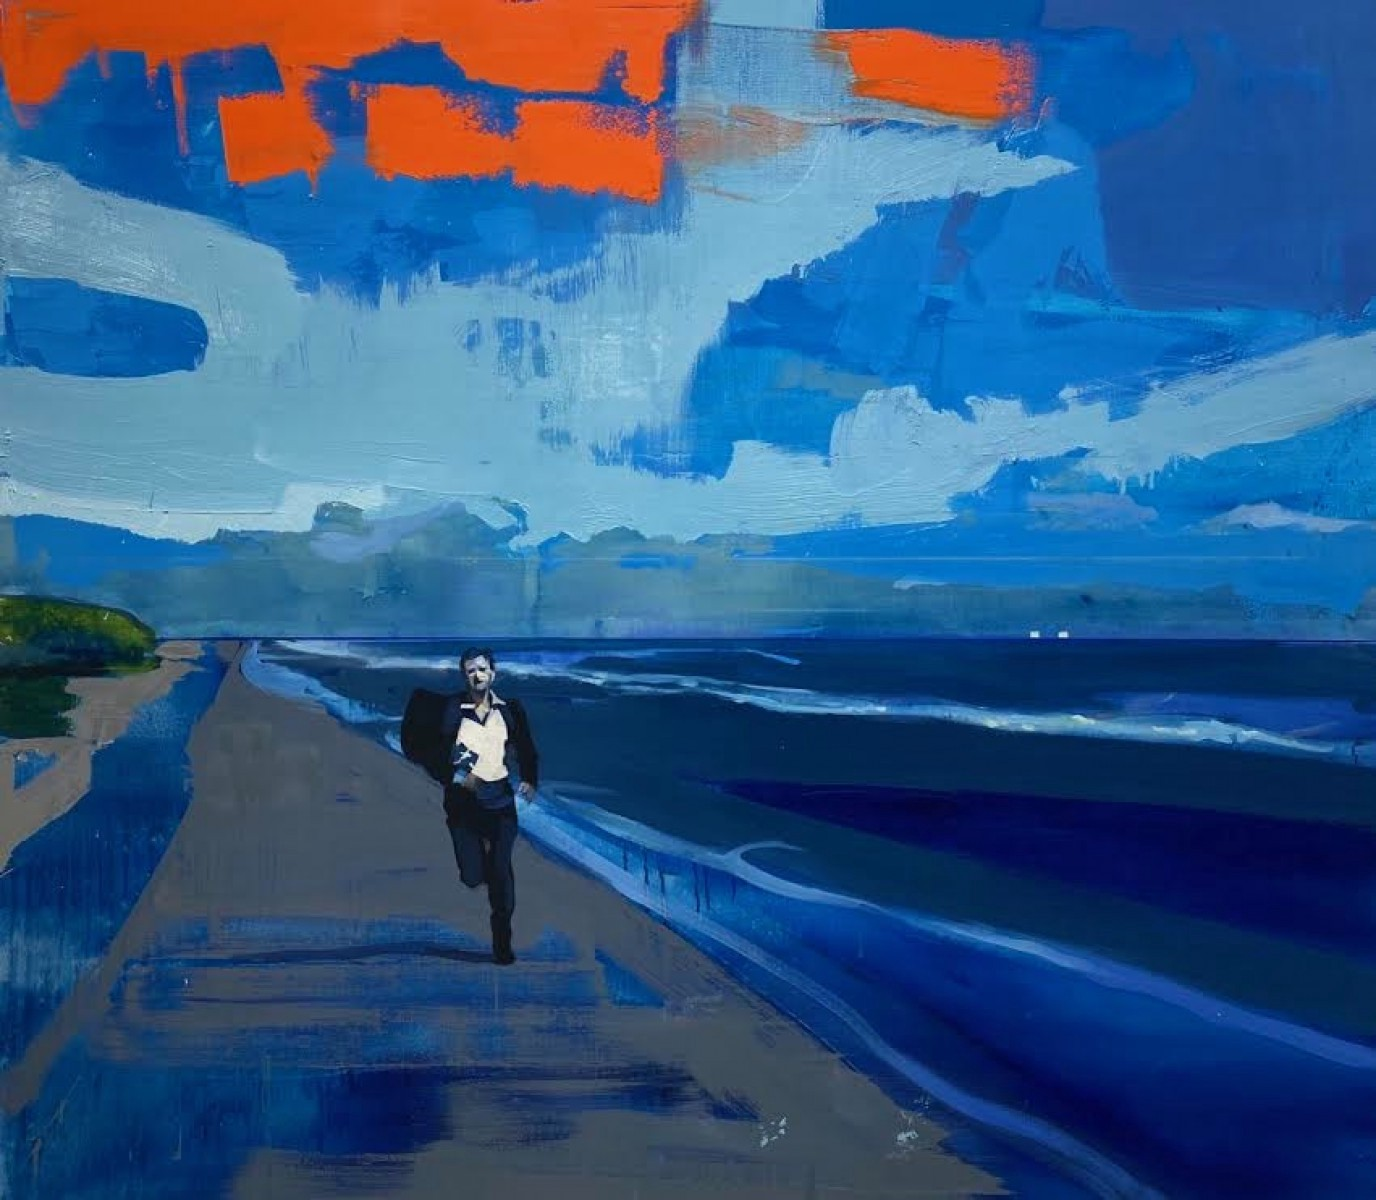 Run, by Kenneth Blom, Oslo, Norway for article by Larry G. Maguire